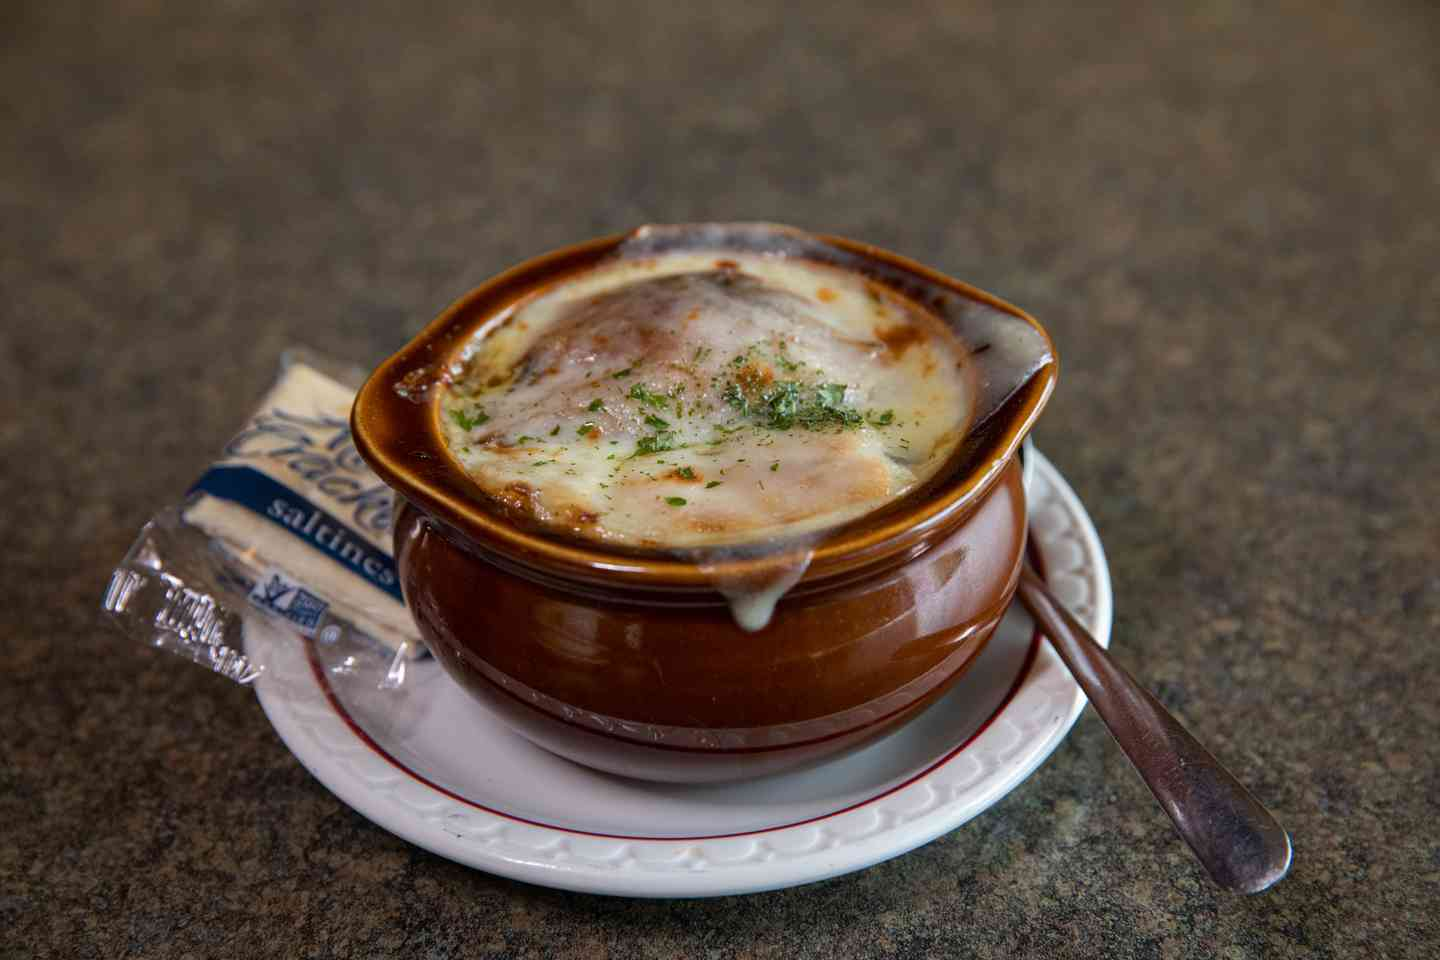 Bowl of French Onion Soup & Salad